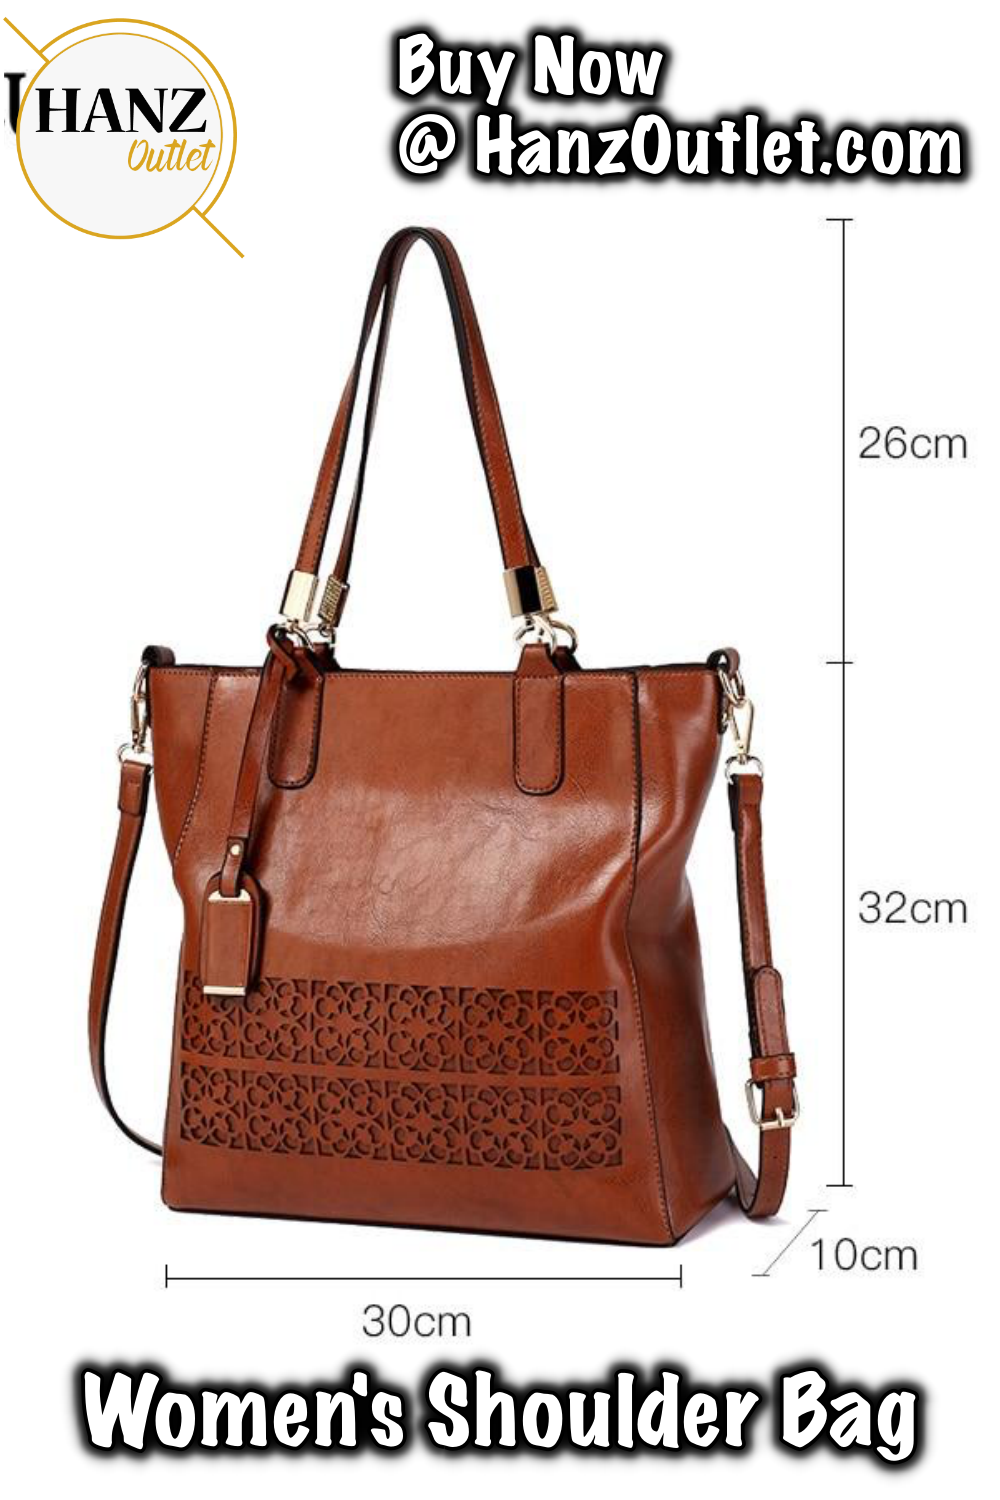 Brand Women s Shoulder Bag Female PU Leather Handbag Women Bags Designer  High Quality Hollow Out Large Capacity Tote Bag  Womensbag  FemaleBag   hanzoutlet   ... e5ec7be97d5ff